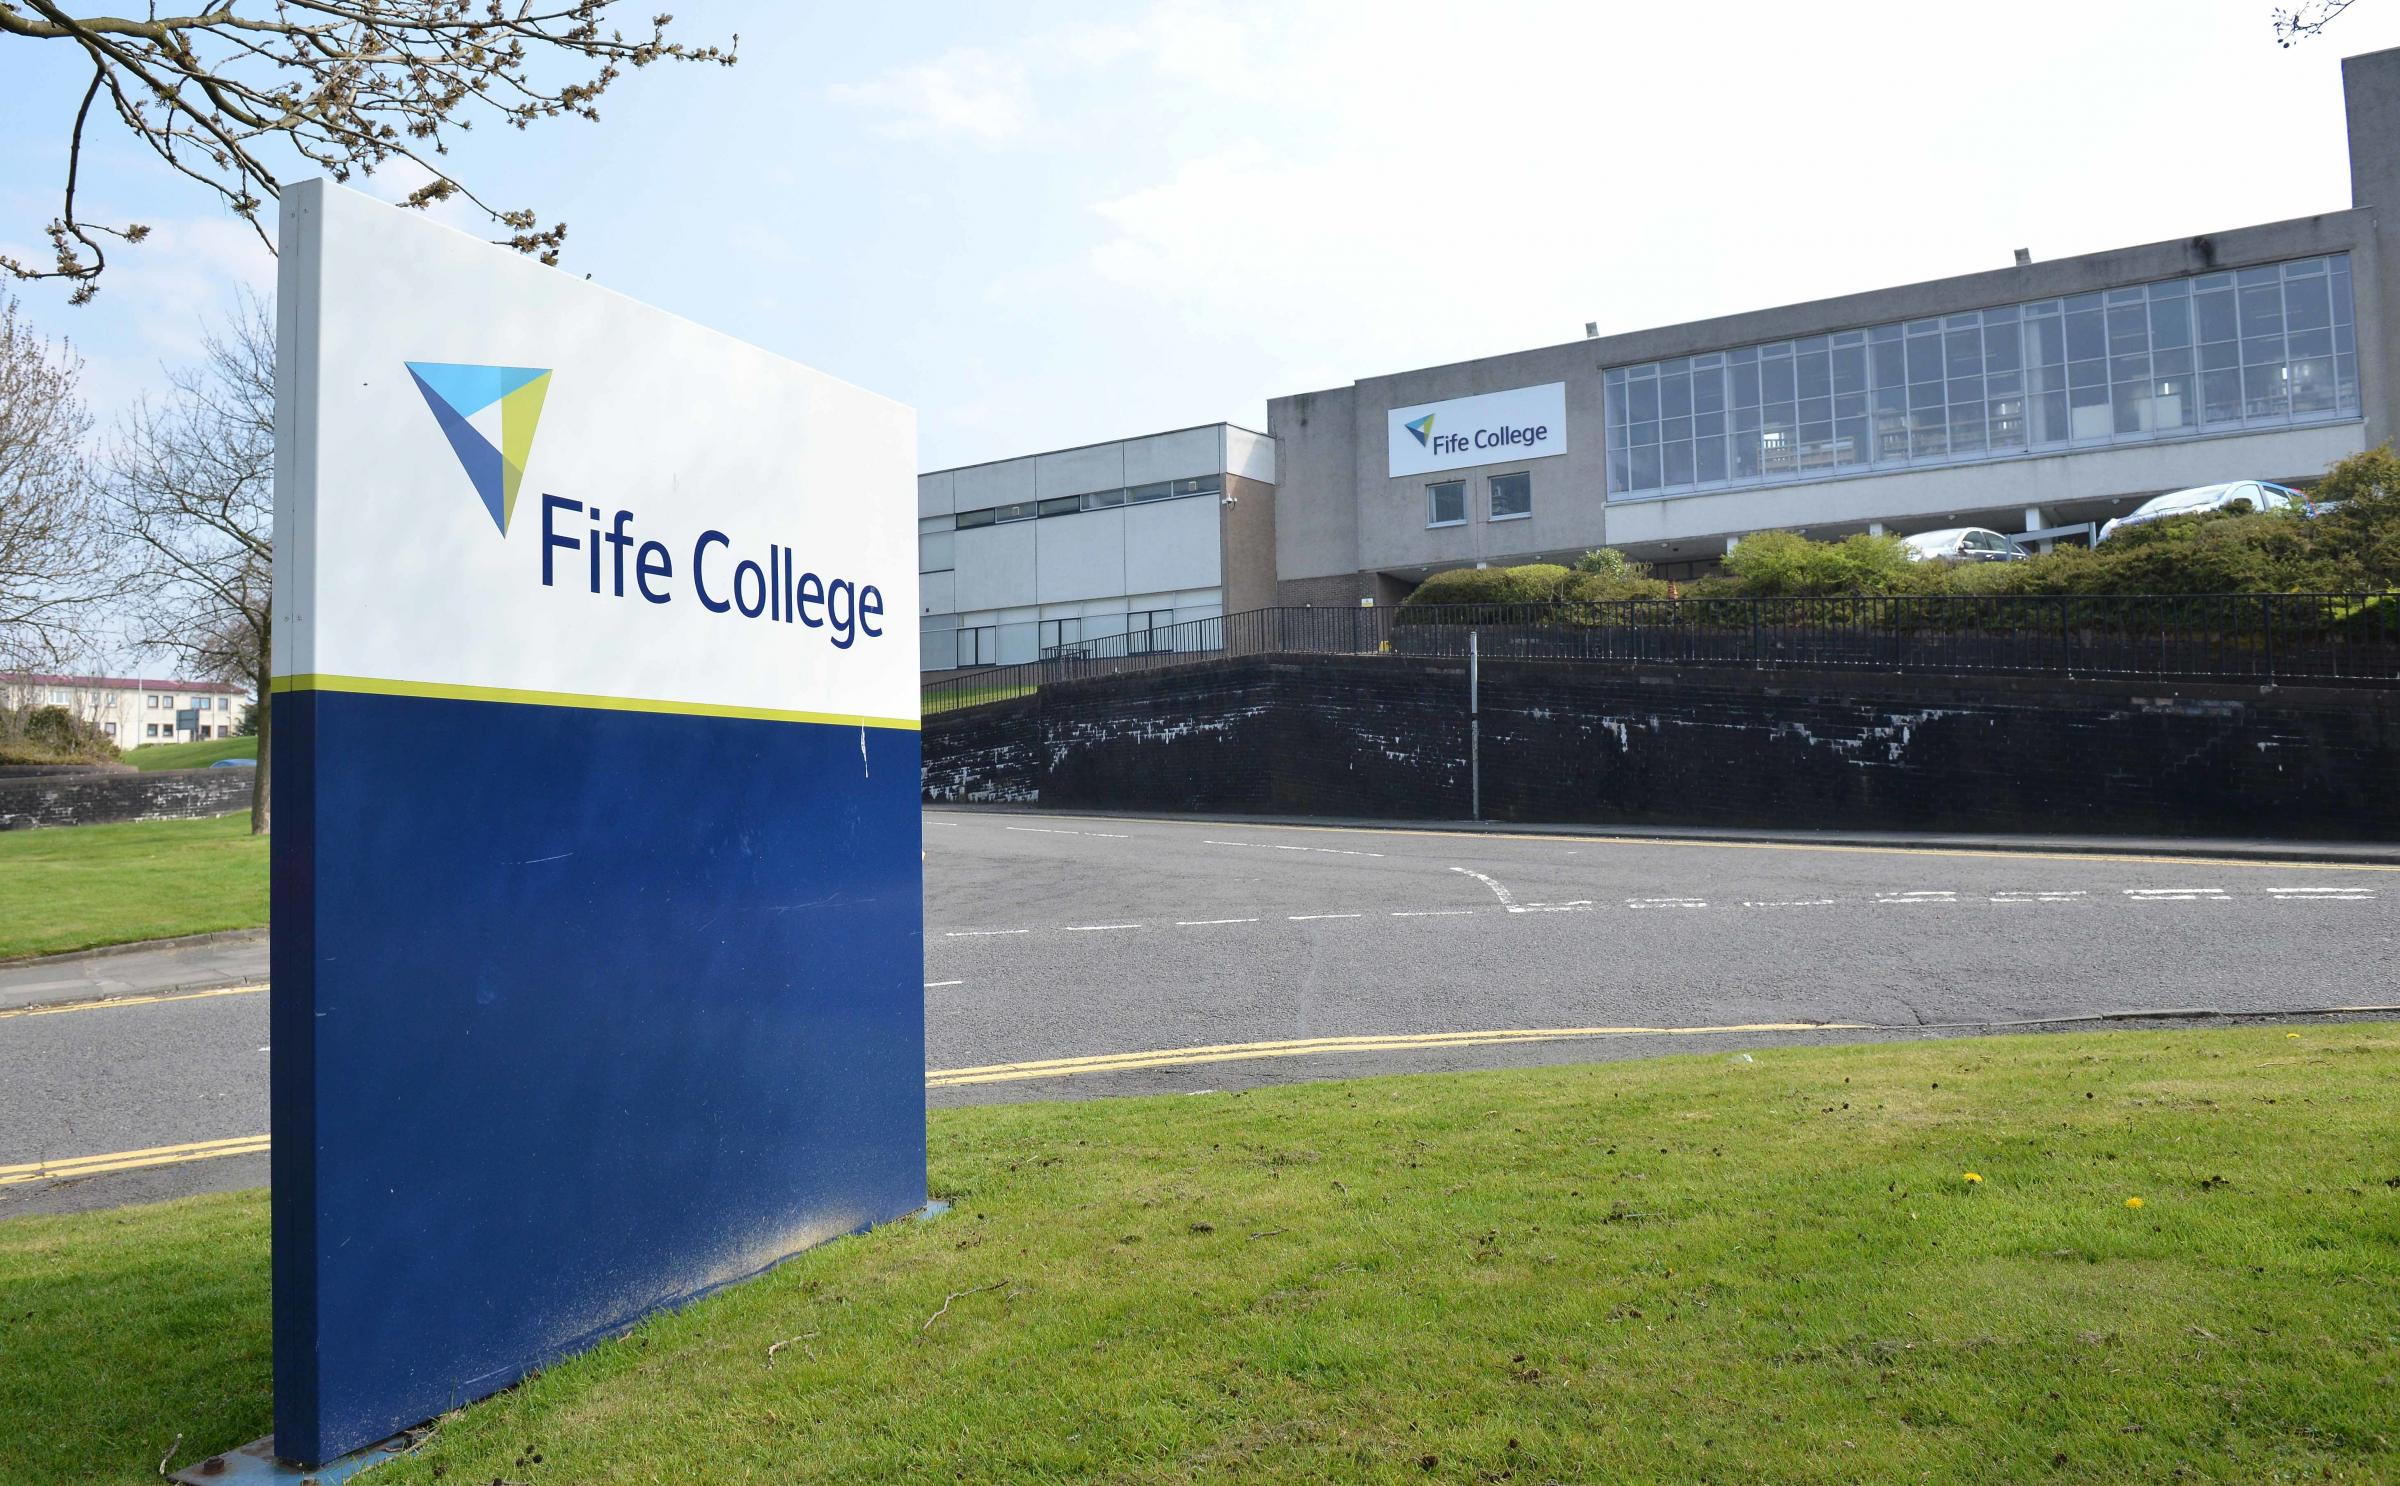 Halbeath: Teenager viciously attacked Fife College student